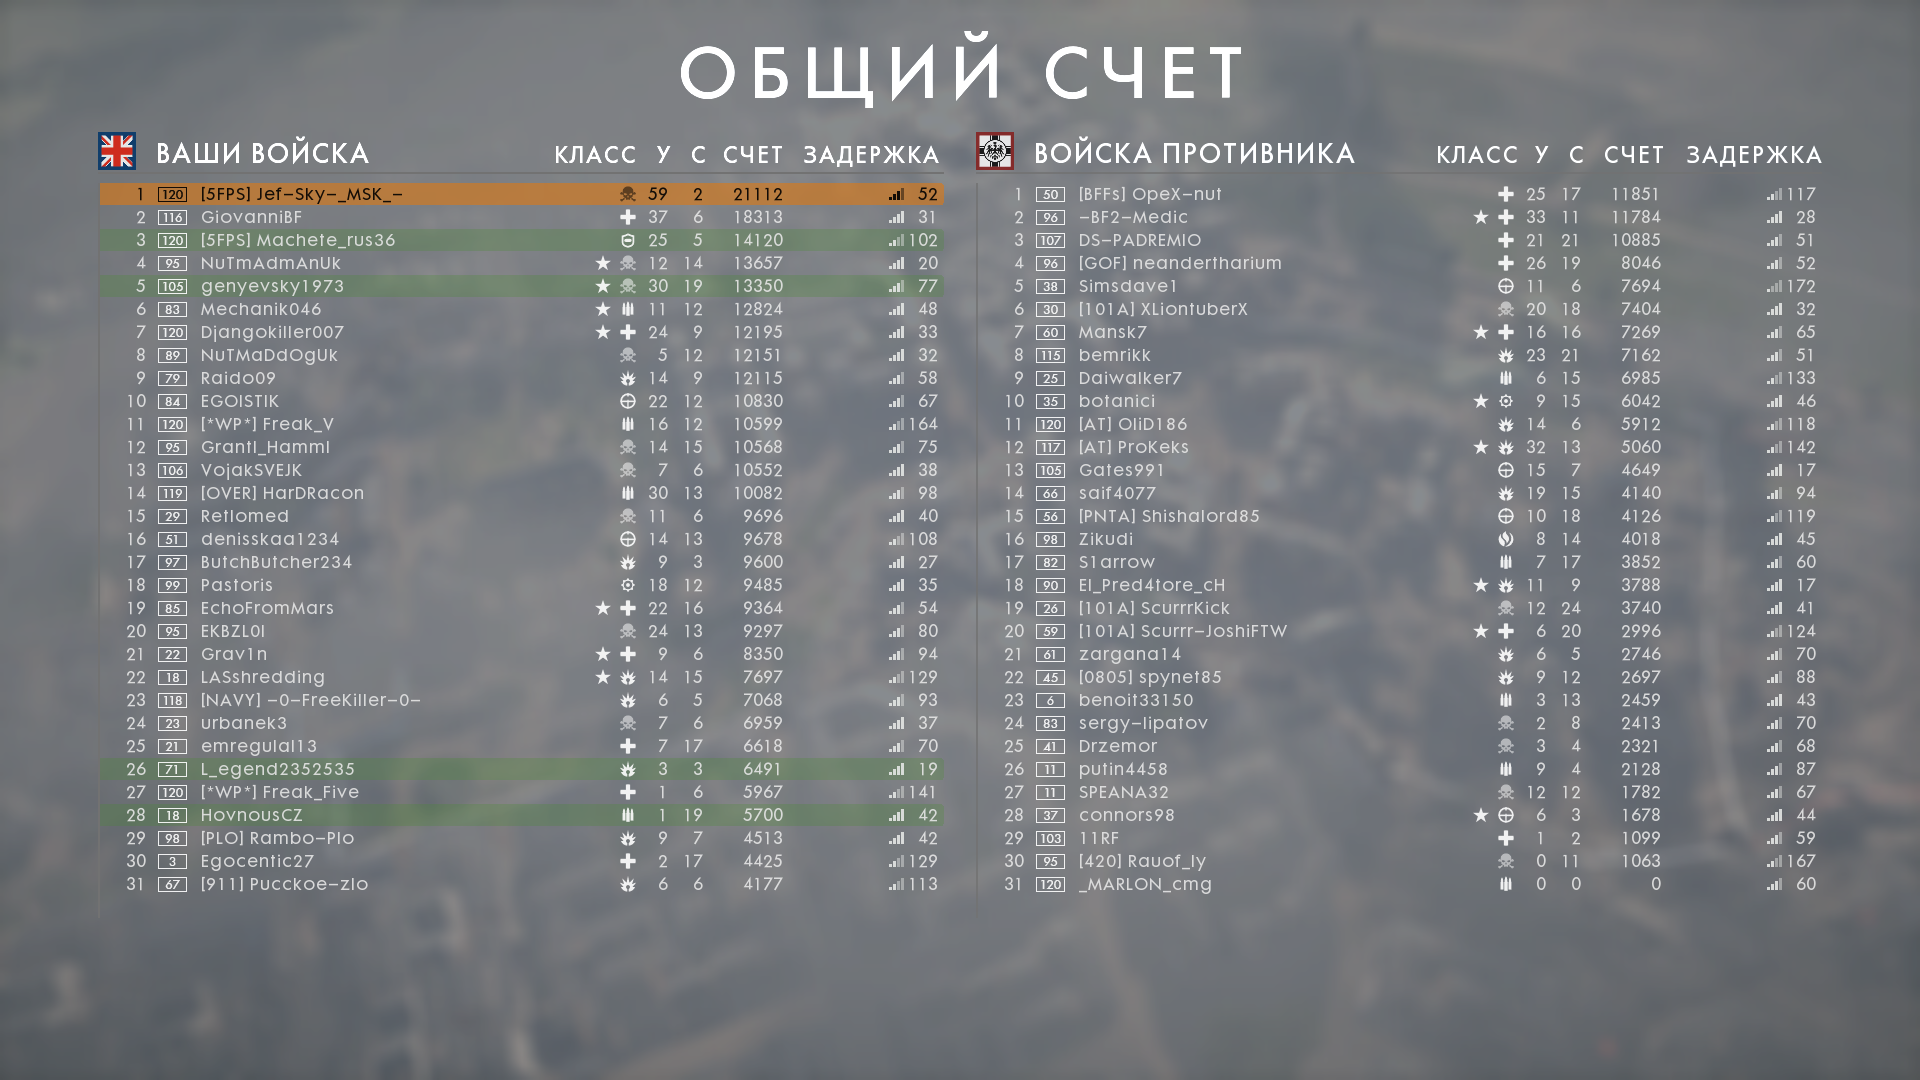 bf1_2017-11-13_23-33-59-813.png